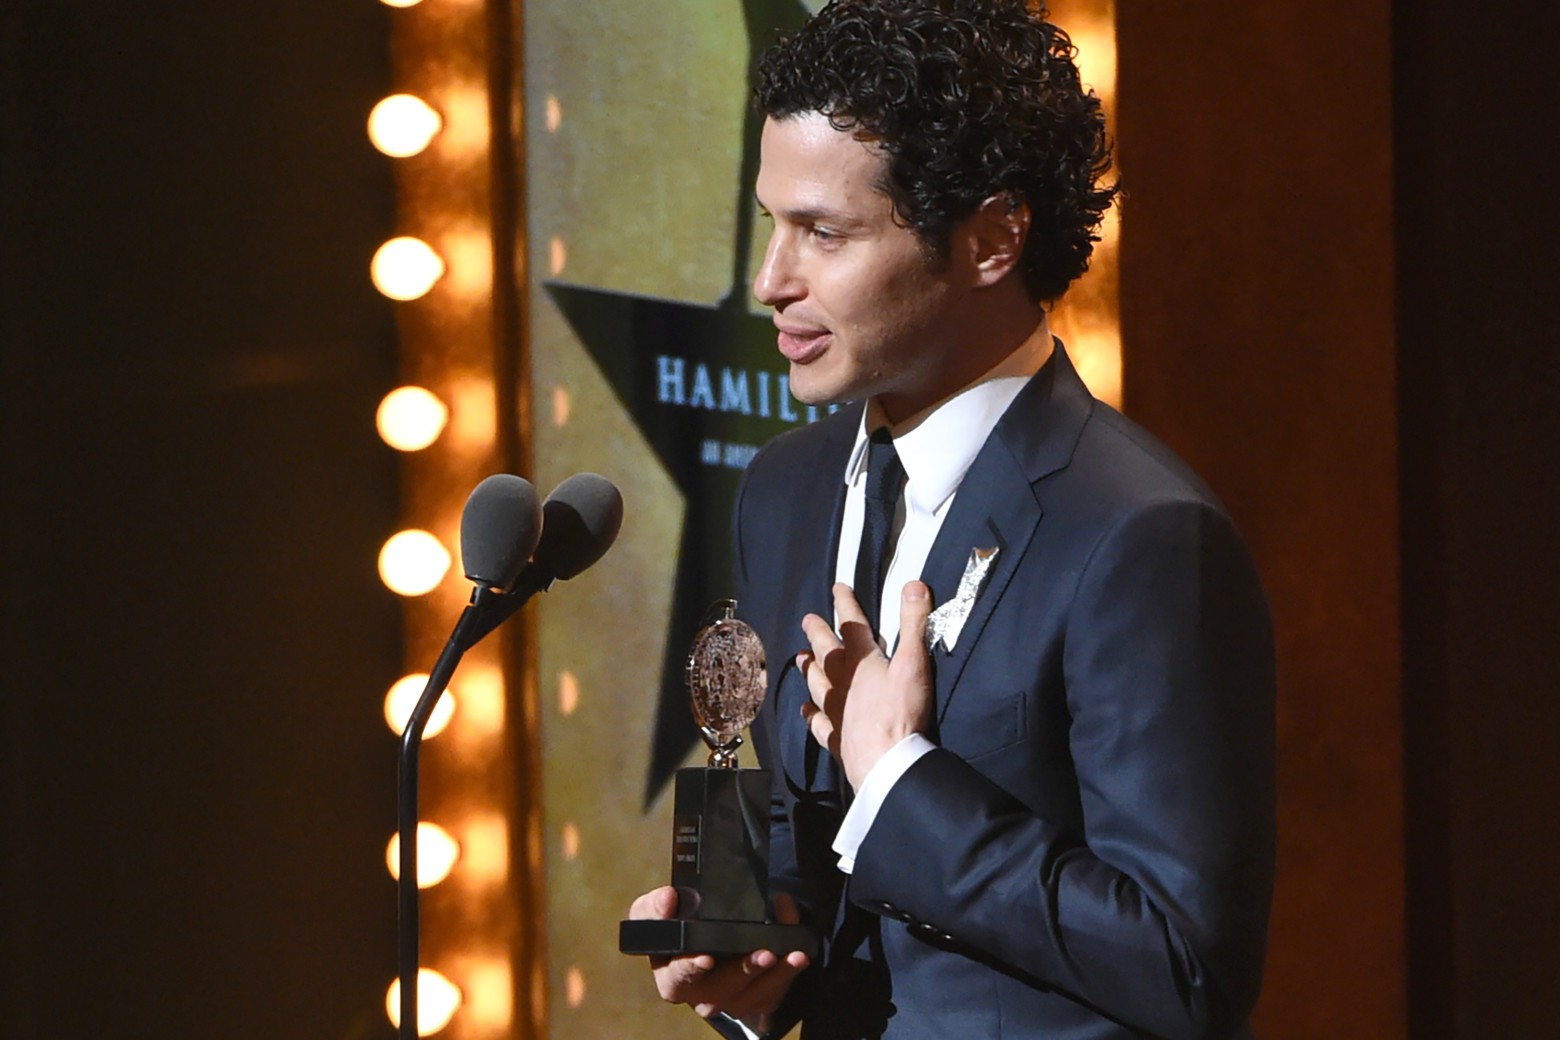 """Thomas Kail accepts the award for best direction of a musical for """"Hamilton"""" at the Tony Awards at the Beacon Theatre on Sunday, June 12, 2016, in New York. (Photo by Evan Agostini/Invision/AP)"""